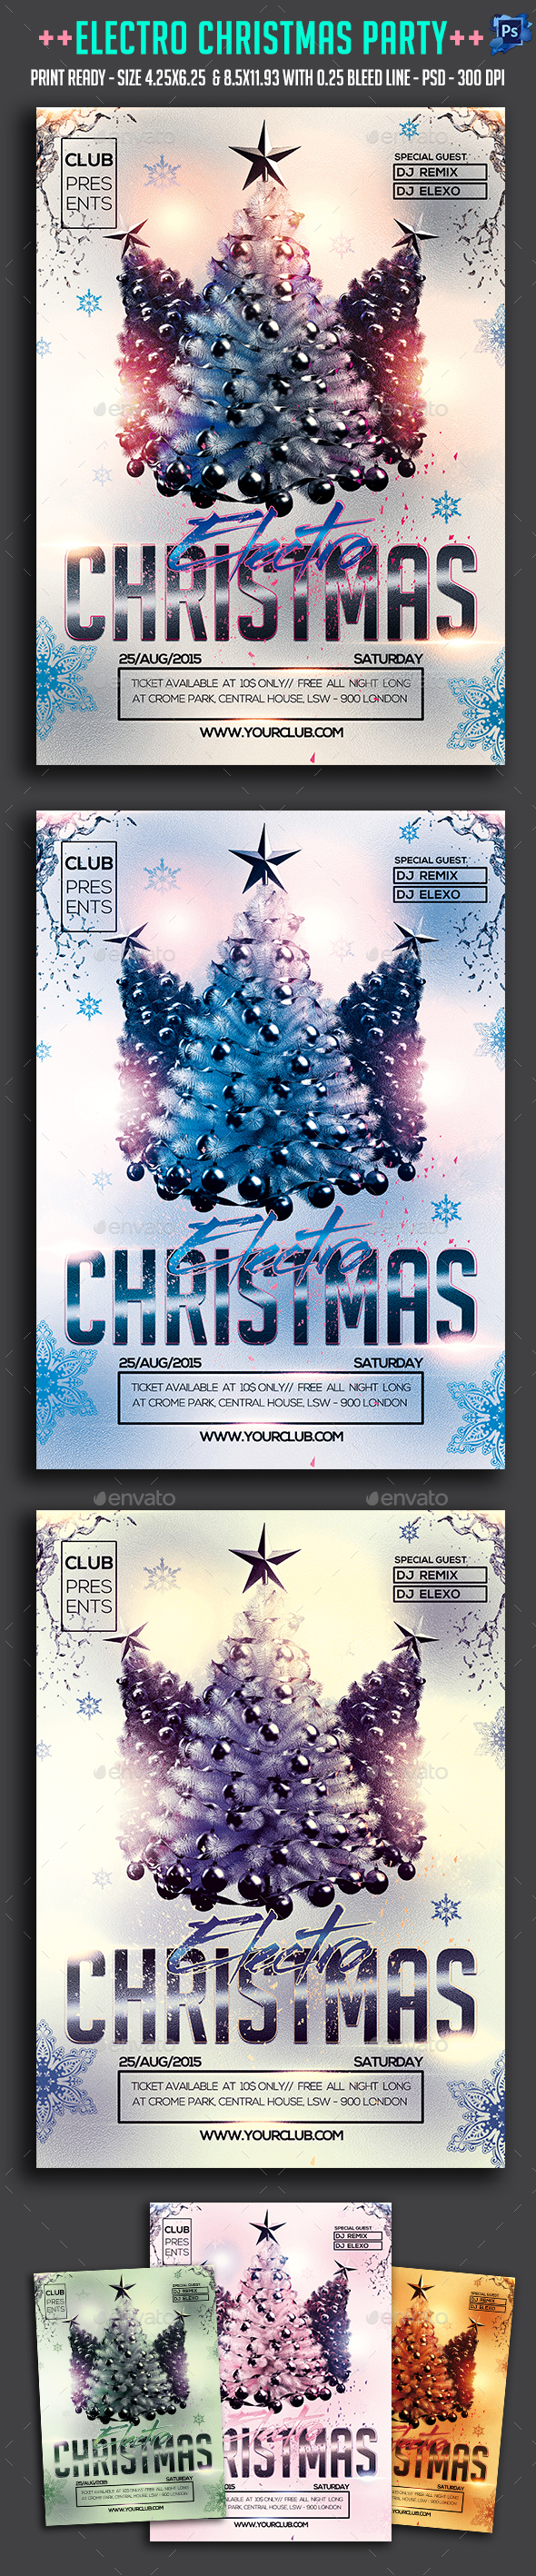 Electro Christmas Party Flyer